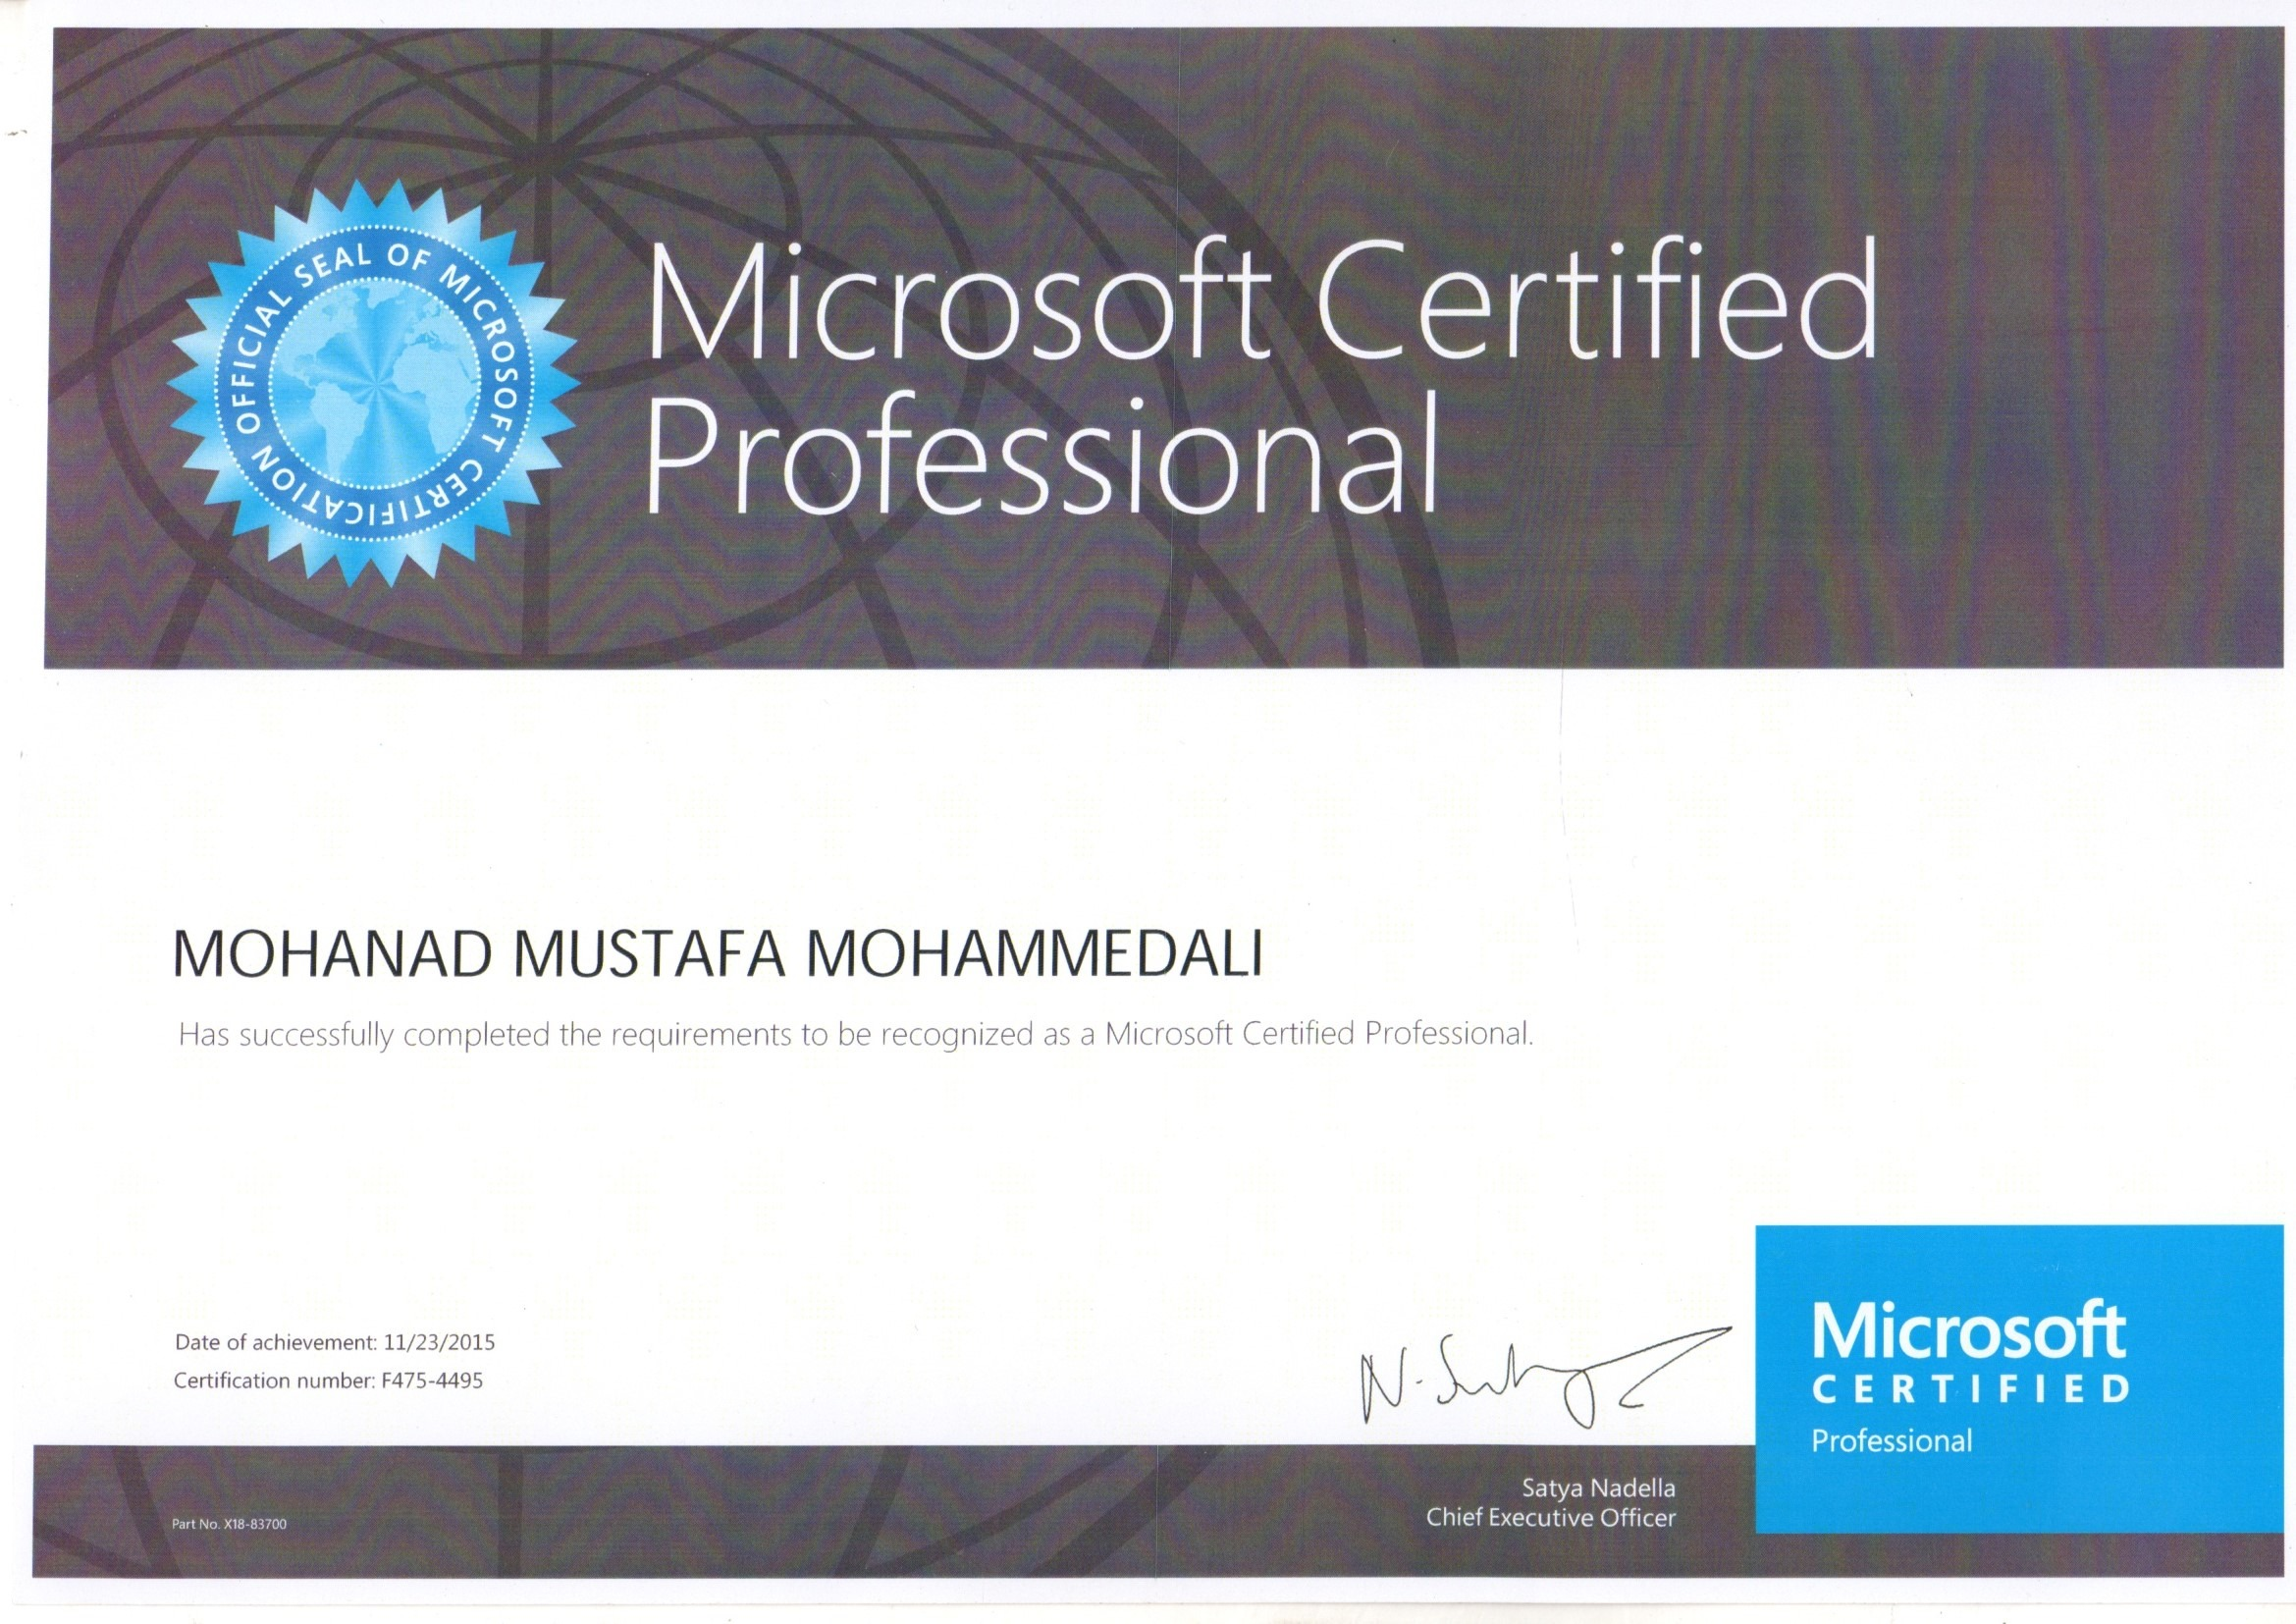 bayt microsoft certified professional certificate 1betcityfo Images